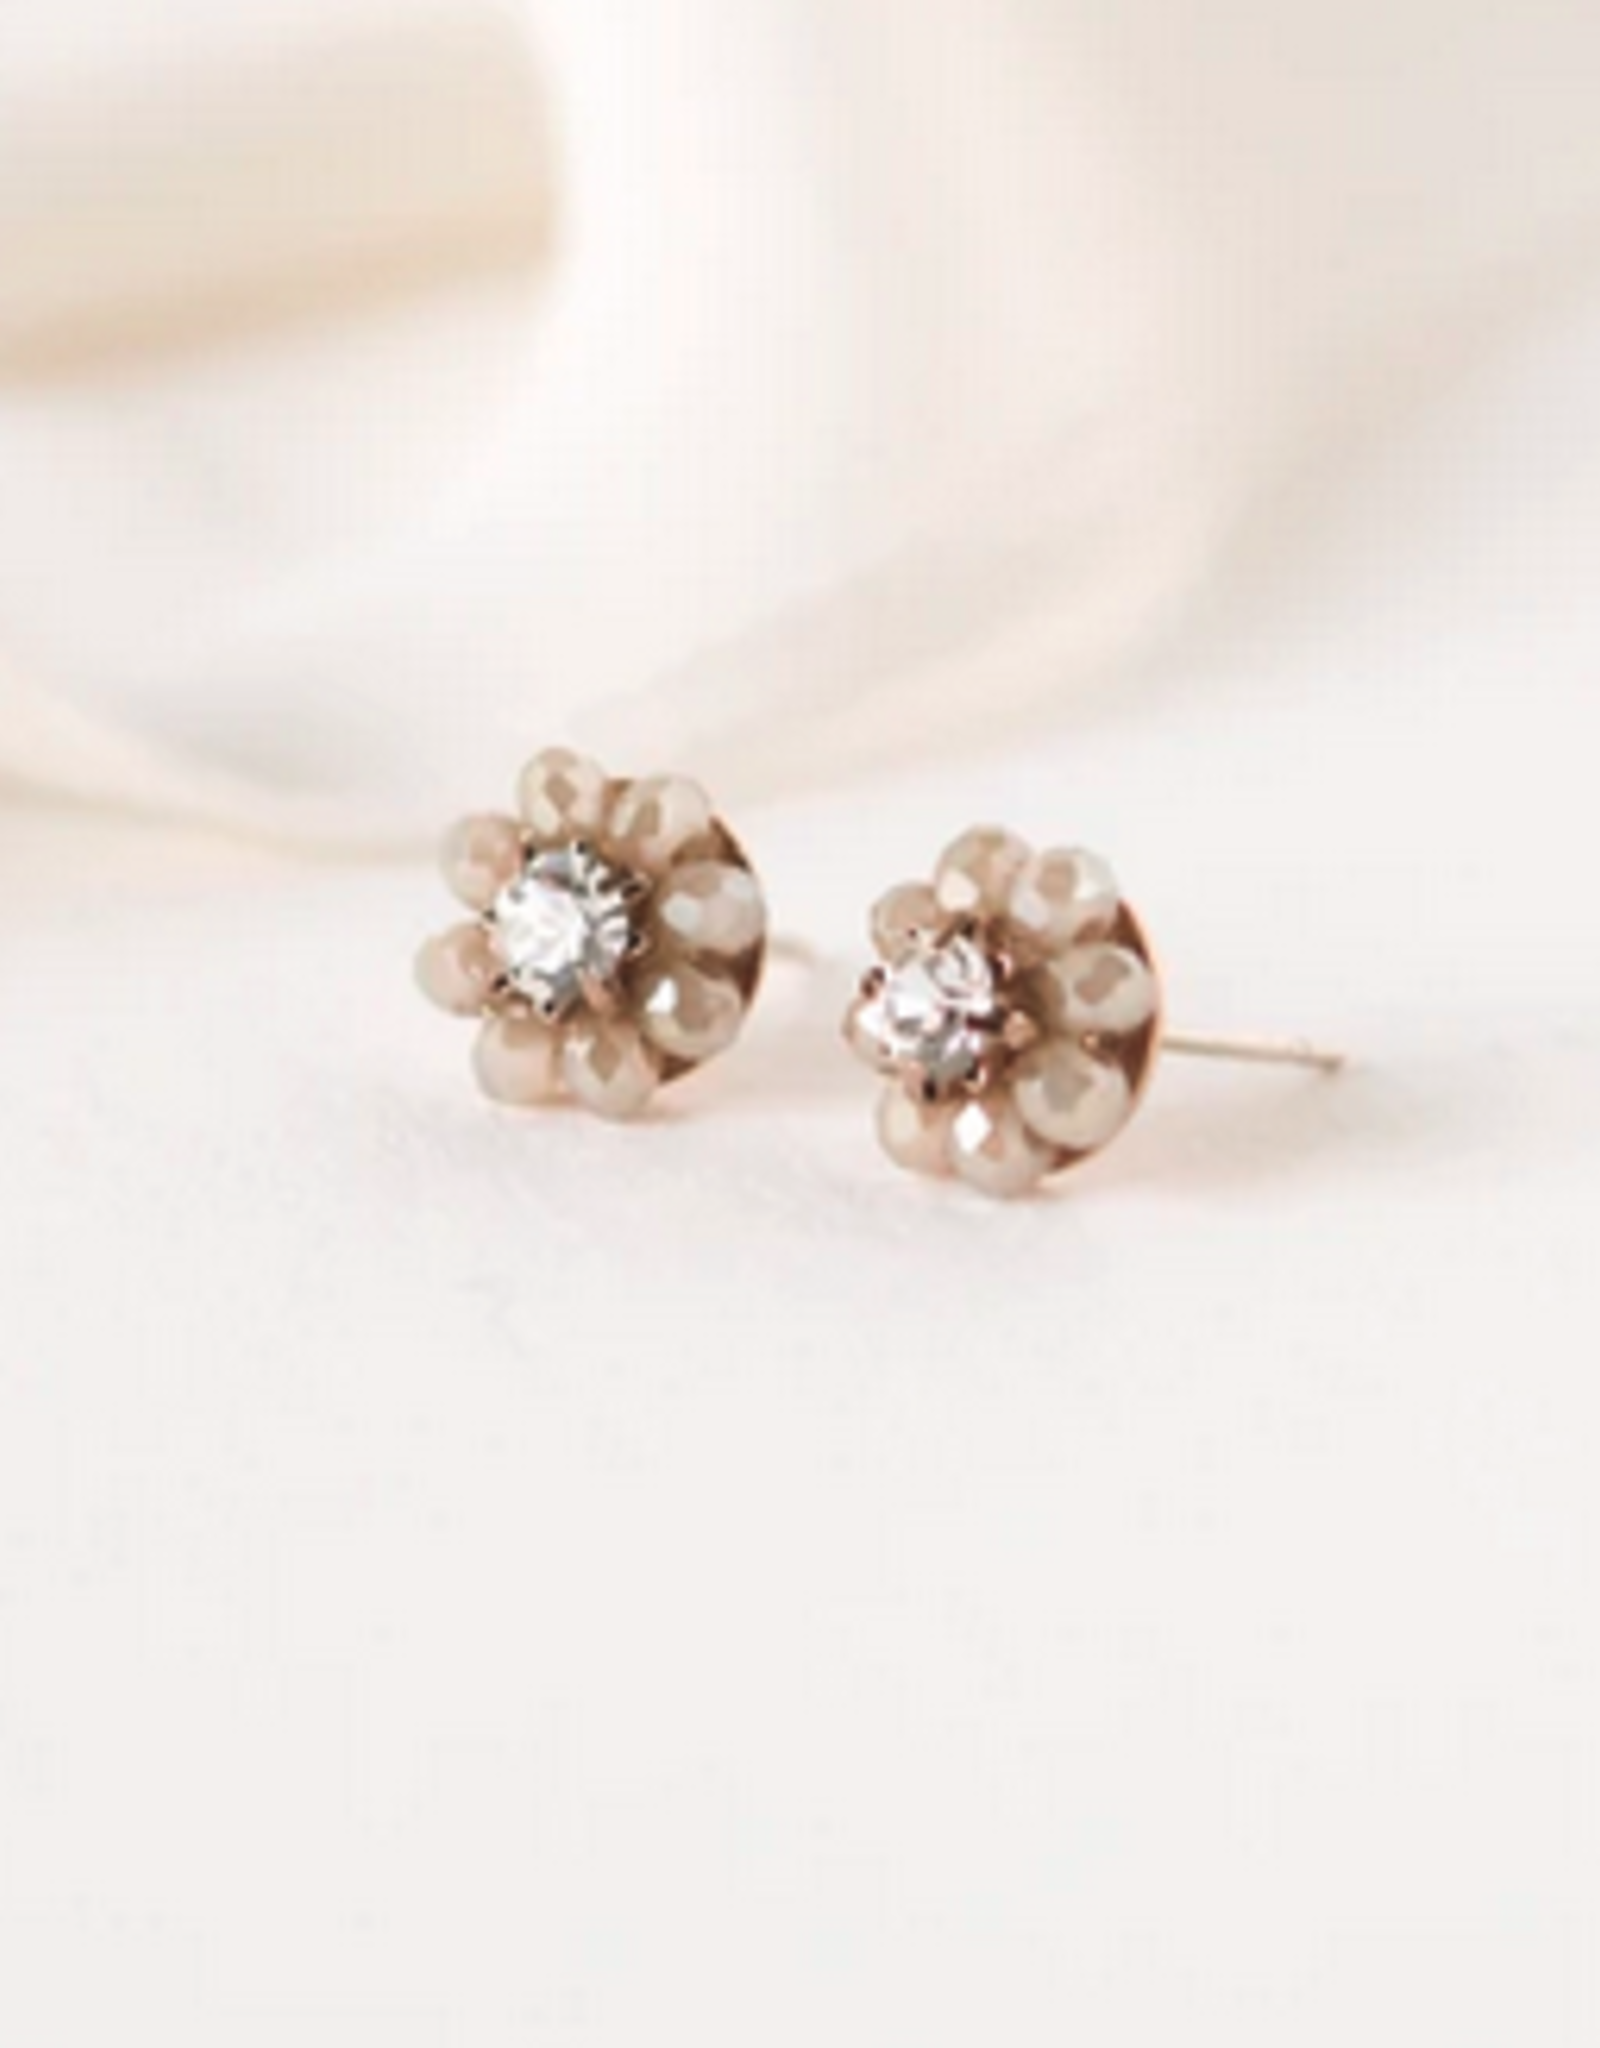 Forget Me Knot Stud Earrings - Creme